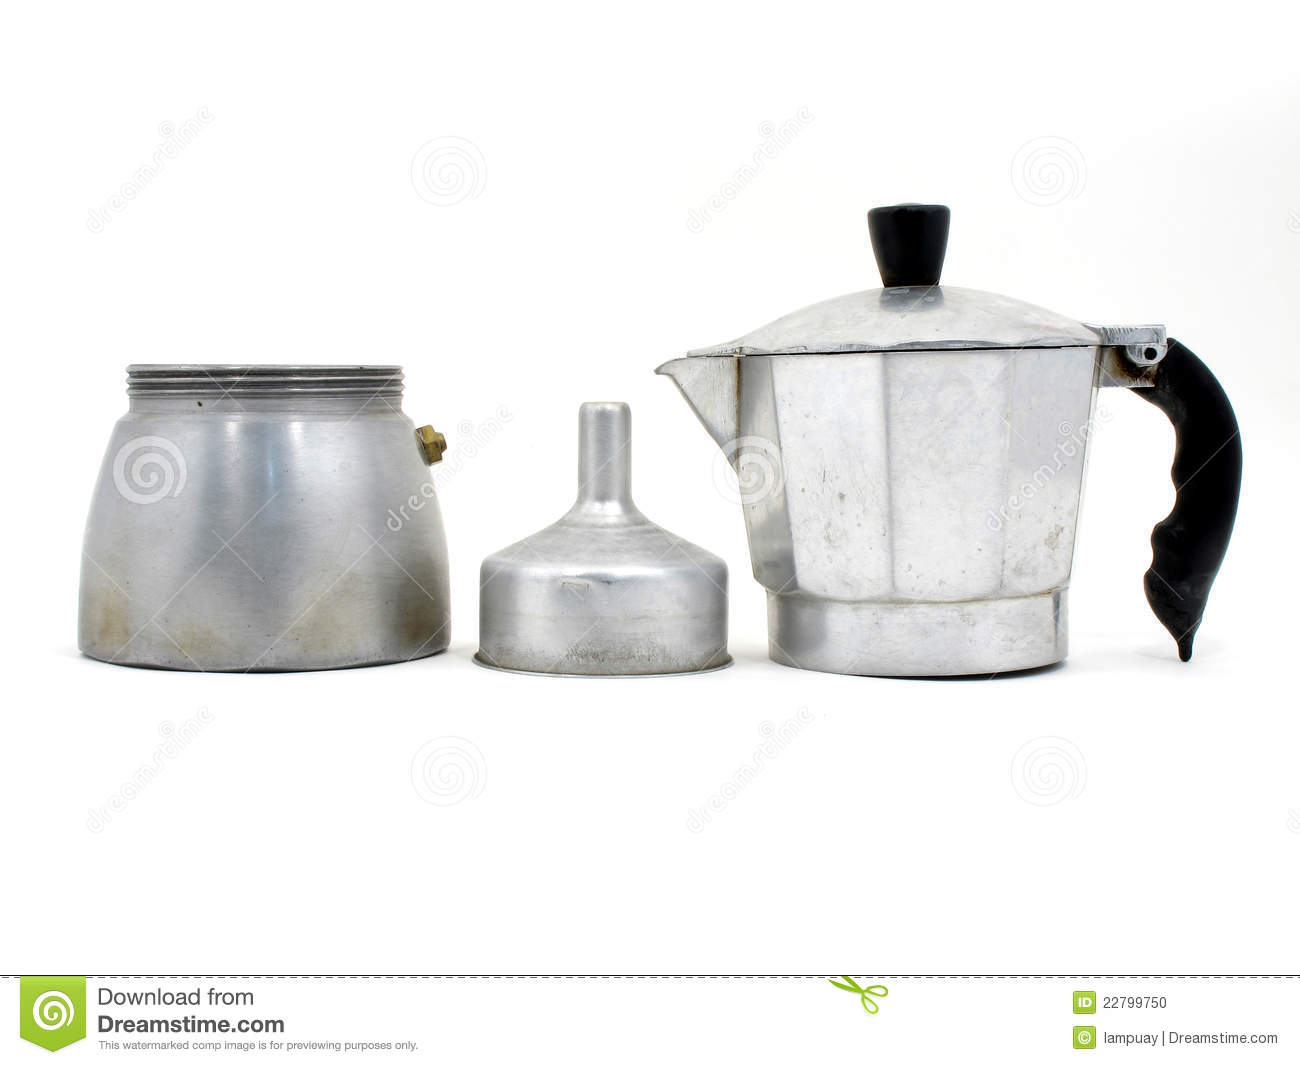 Map Italian Coffee Maker : Component Of Italian Coffee Maker Stock Photo - Image: 22799750